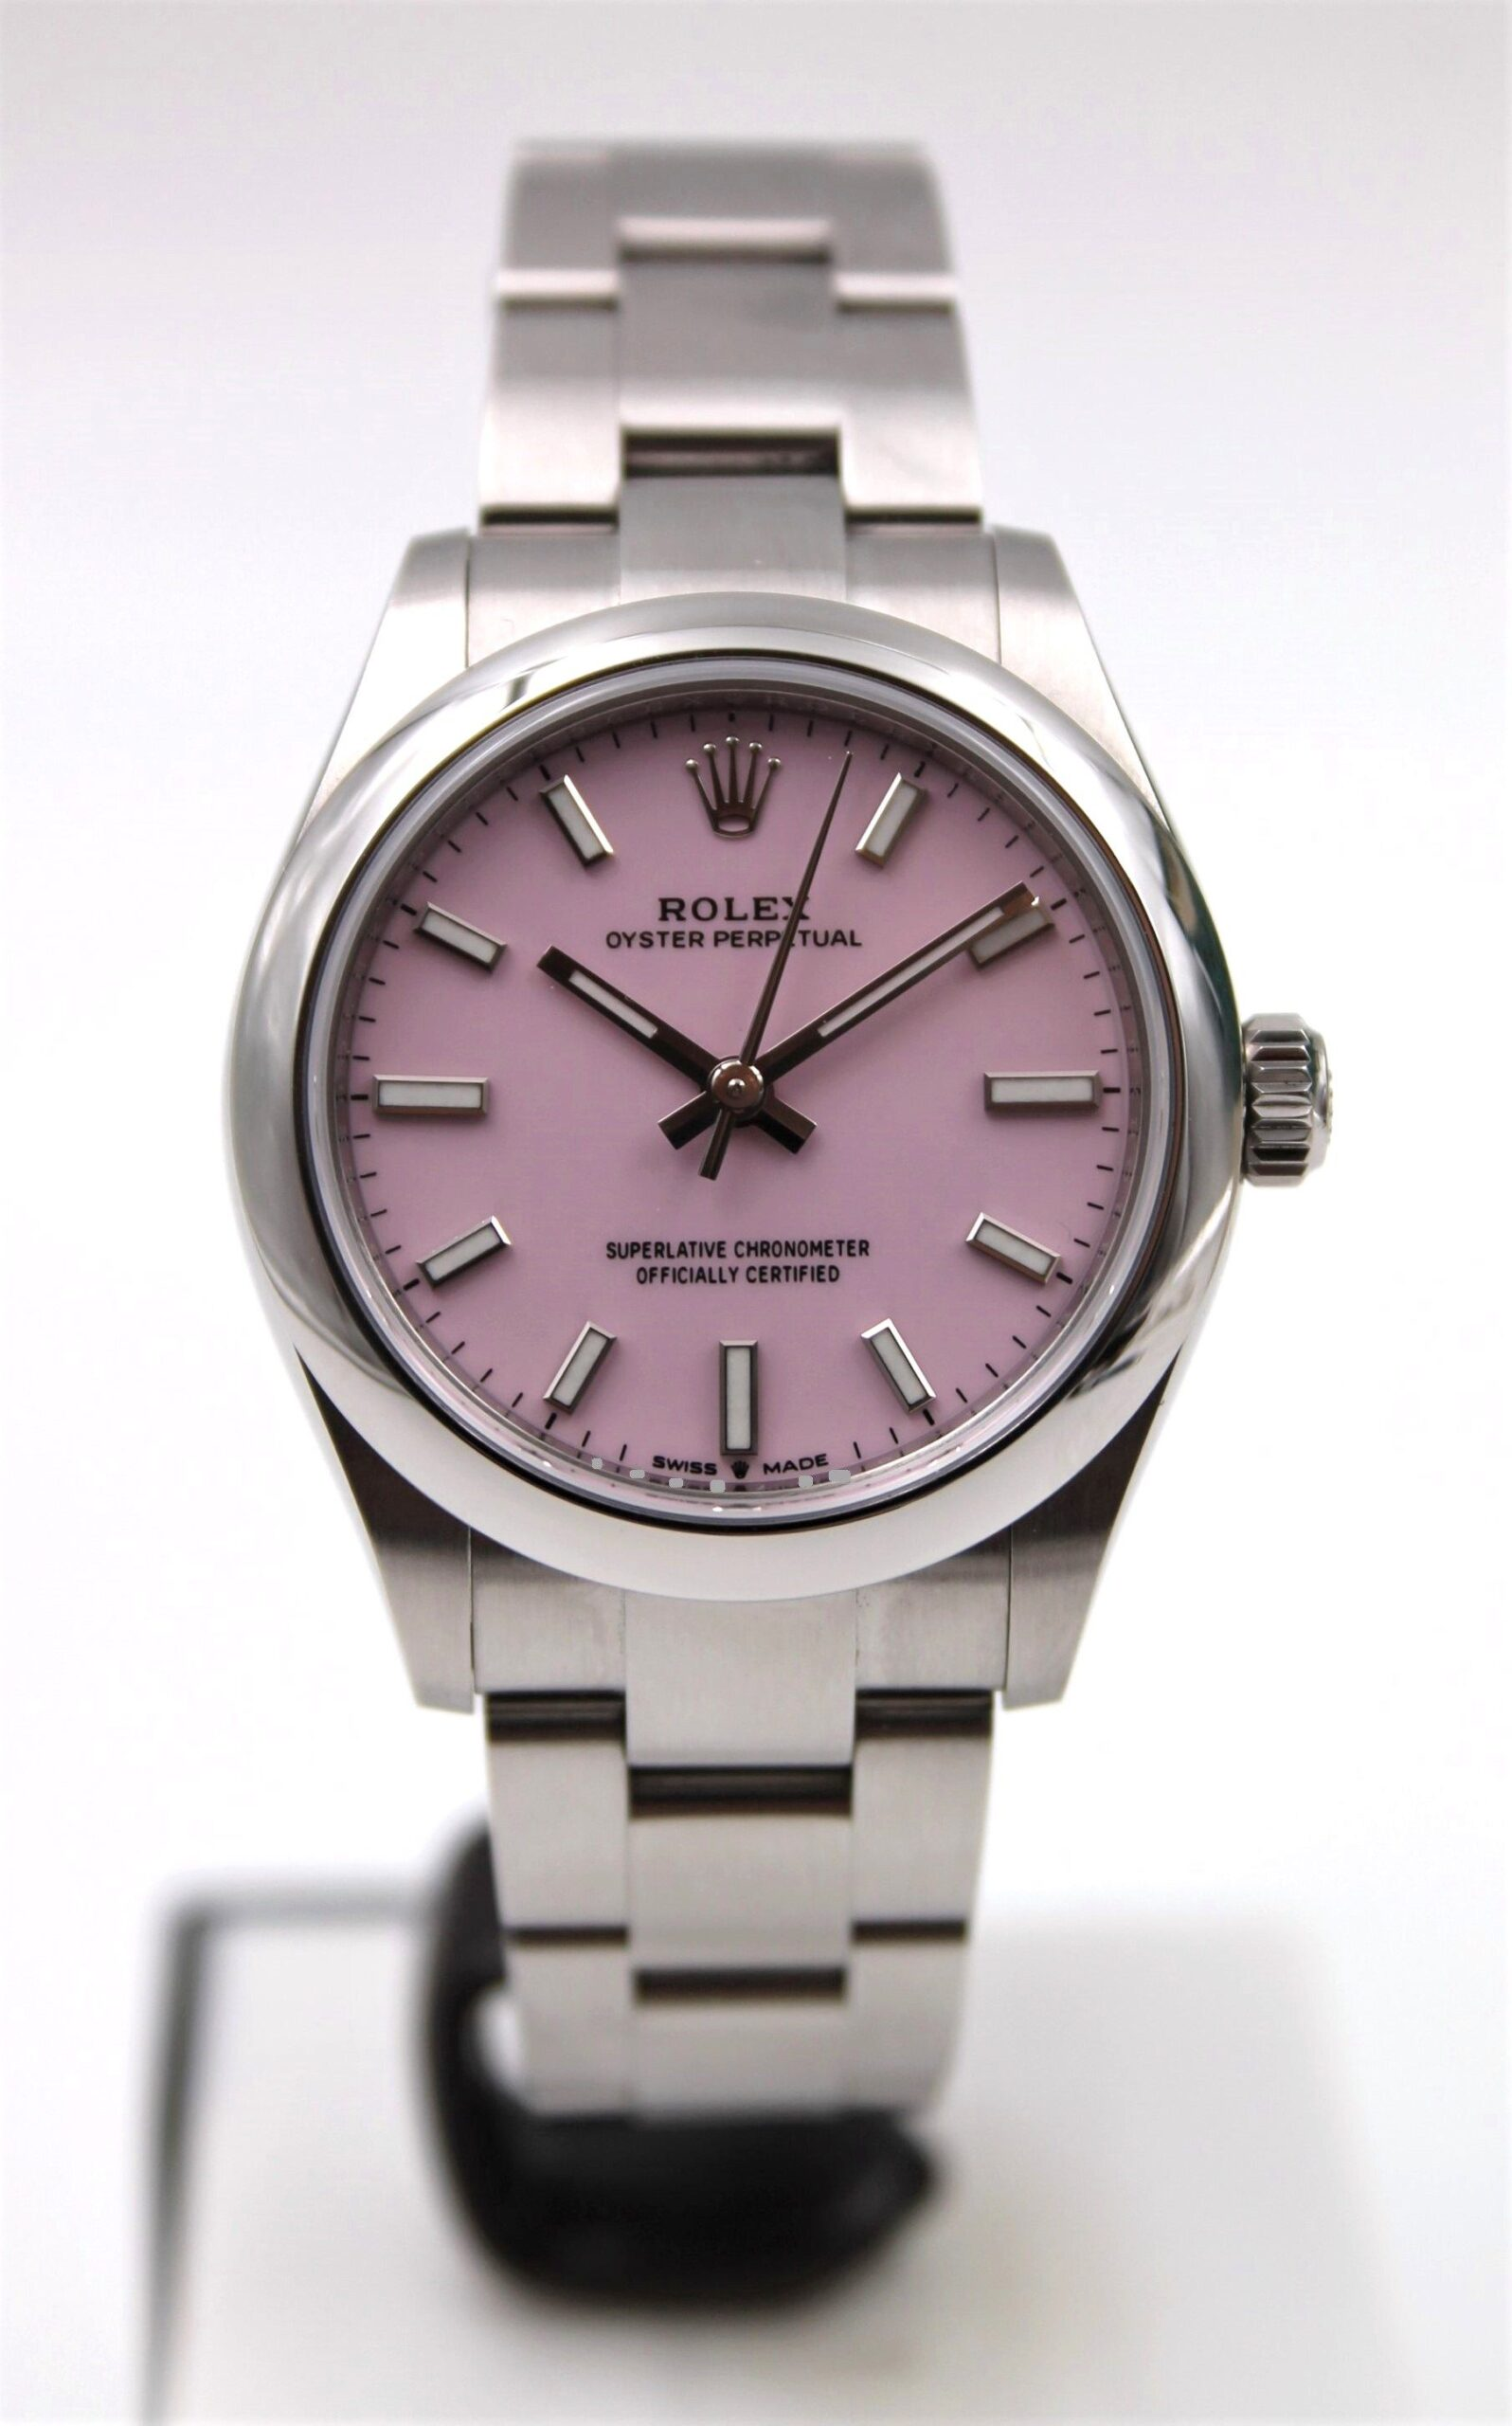 Rolex Oyster Perpetual 277200 Pink Dial 2020